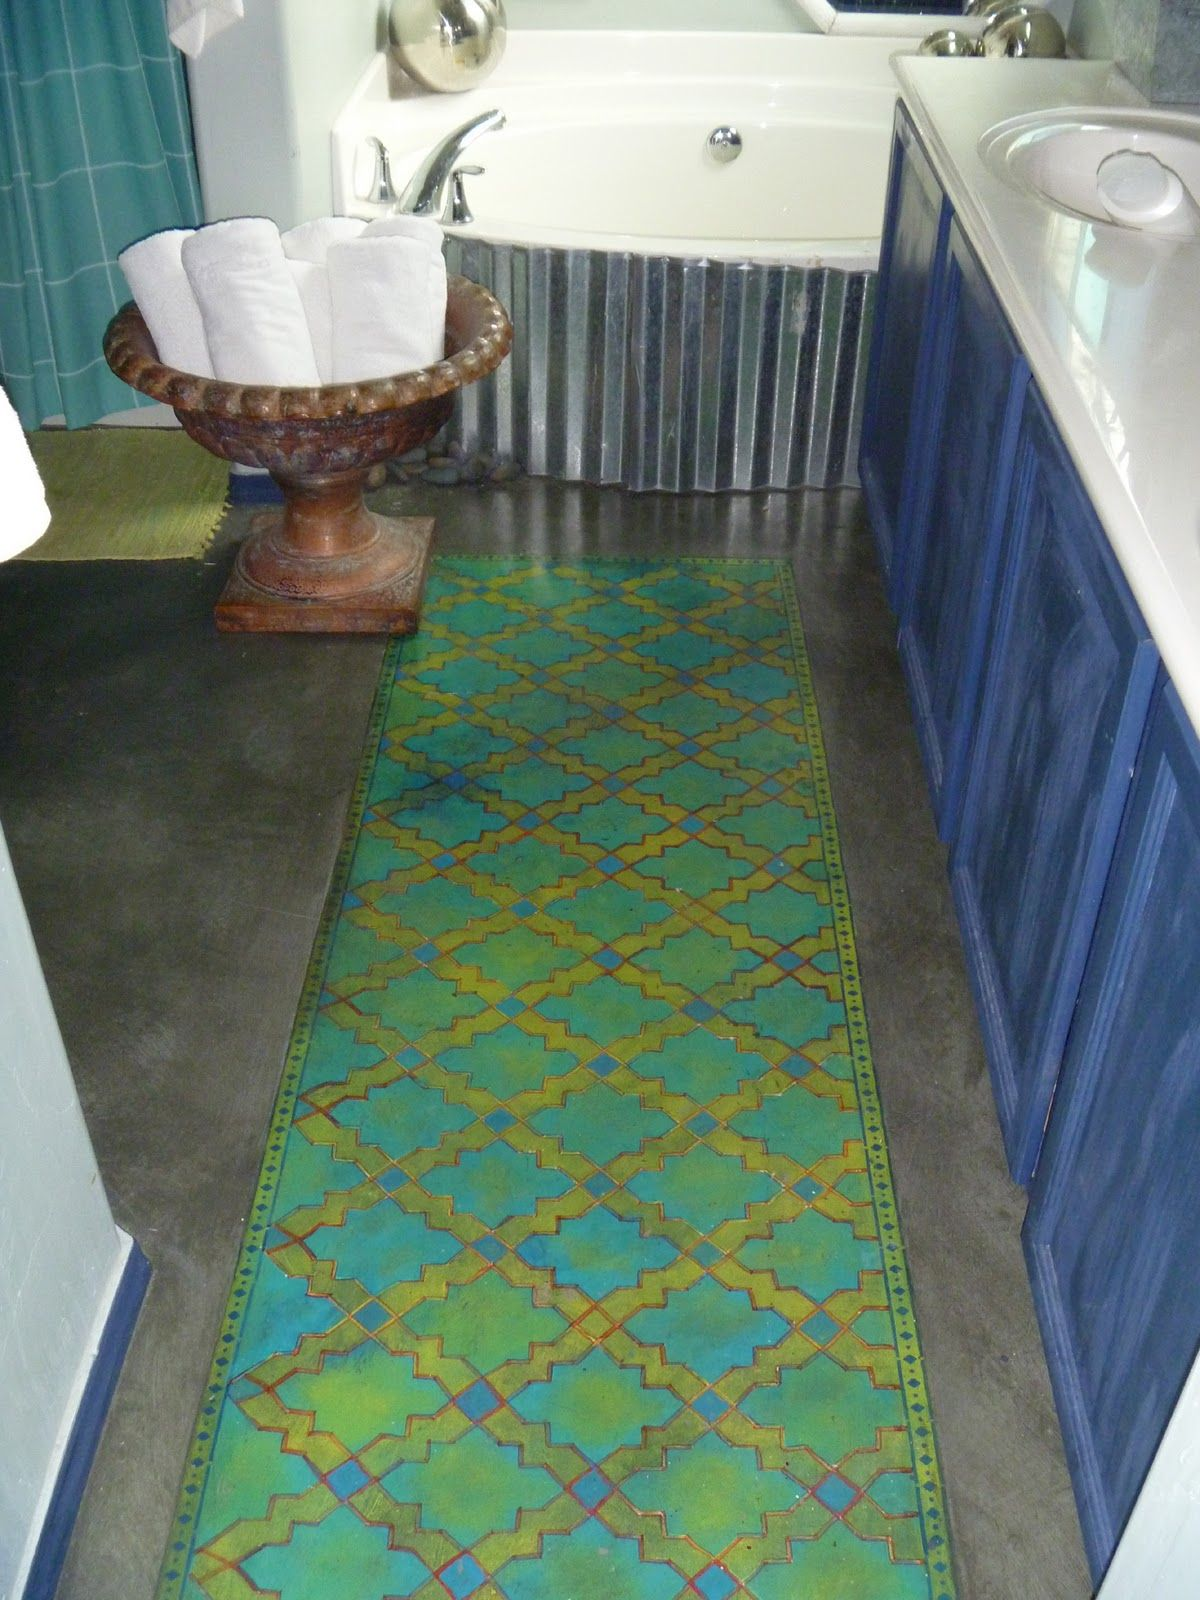 Stenciled Runner On A Concrete Bathroom Floor From DESIGN SHARE: Stylish  Stencils. Check Out The Corrugated Tub Surround.